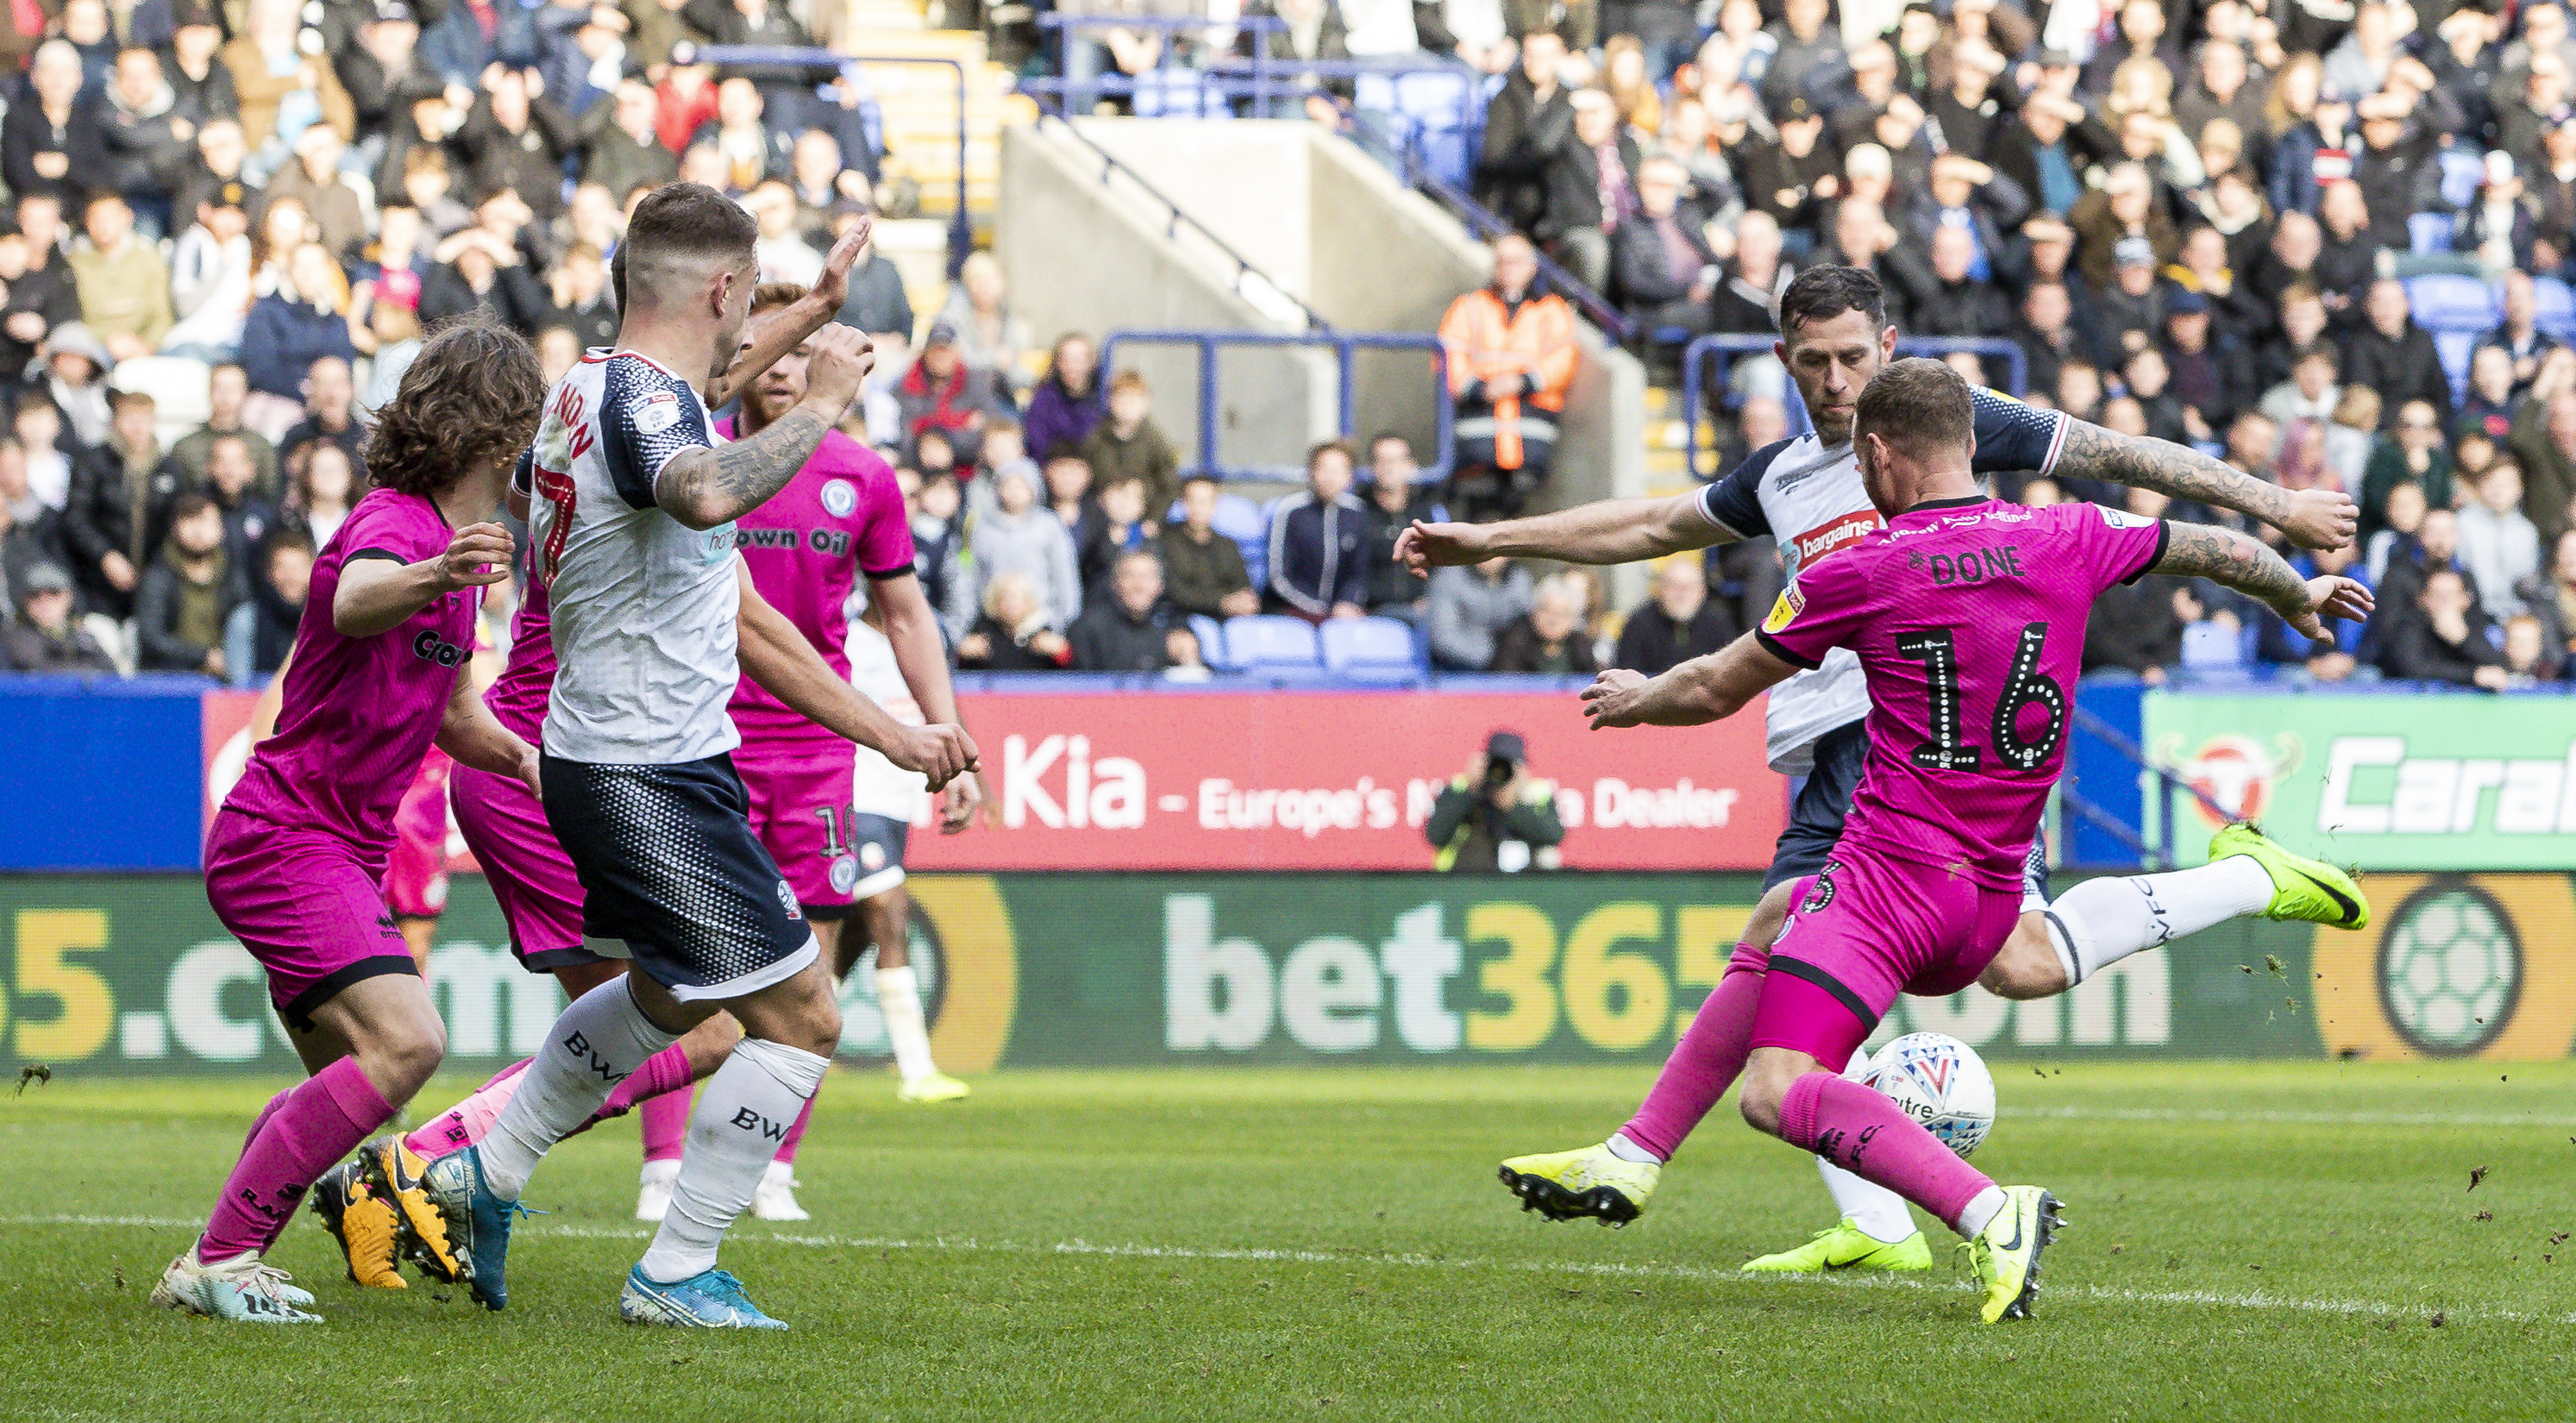 Bolton Wanderers v Rochdale - Sky Bet League One